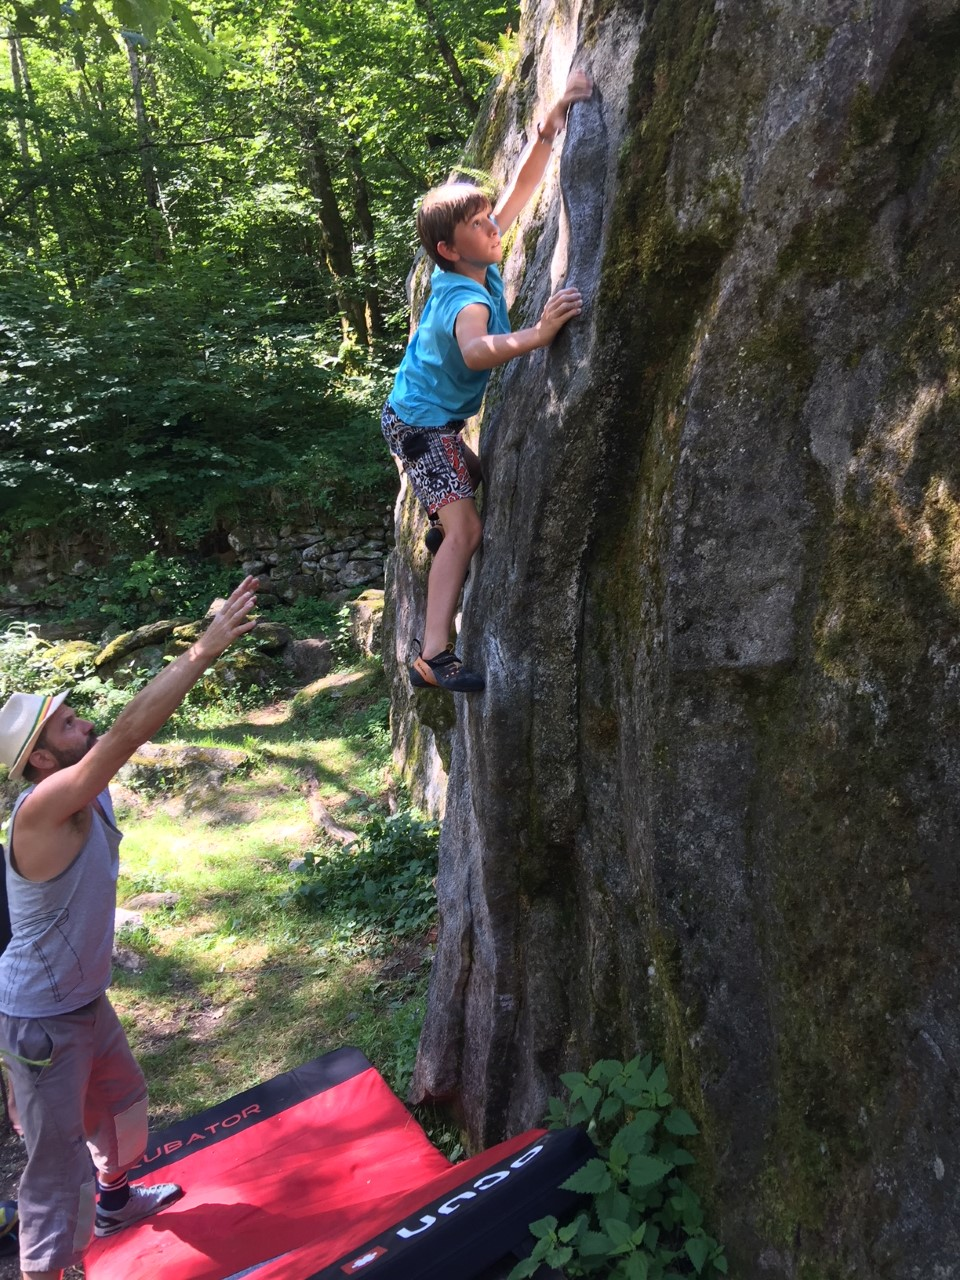 GC - escalade en ariege - blocs orlu - david aout 2018 2